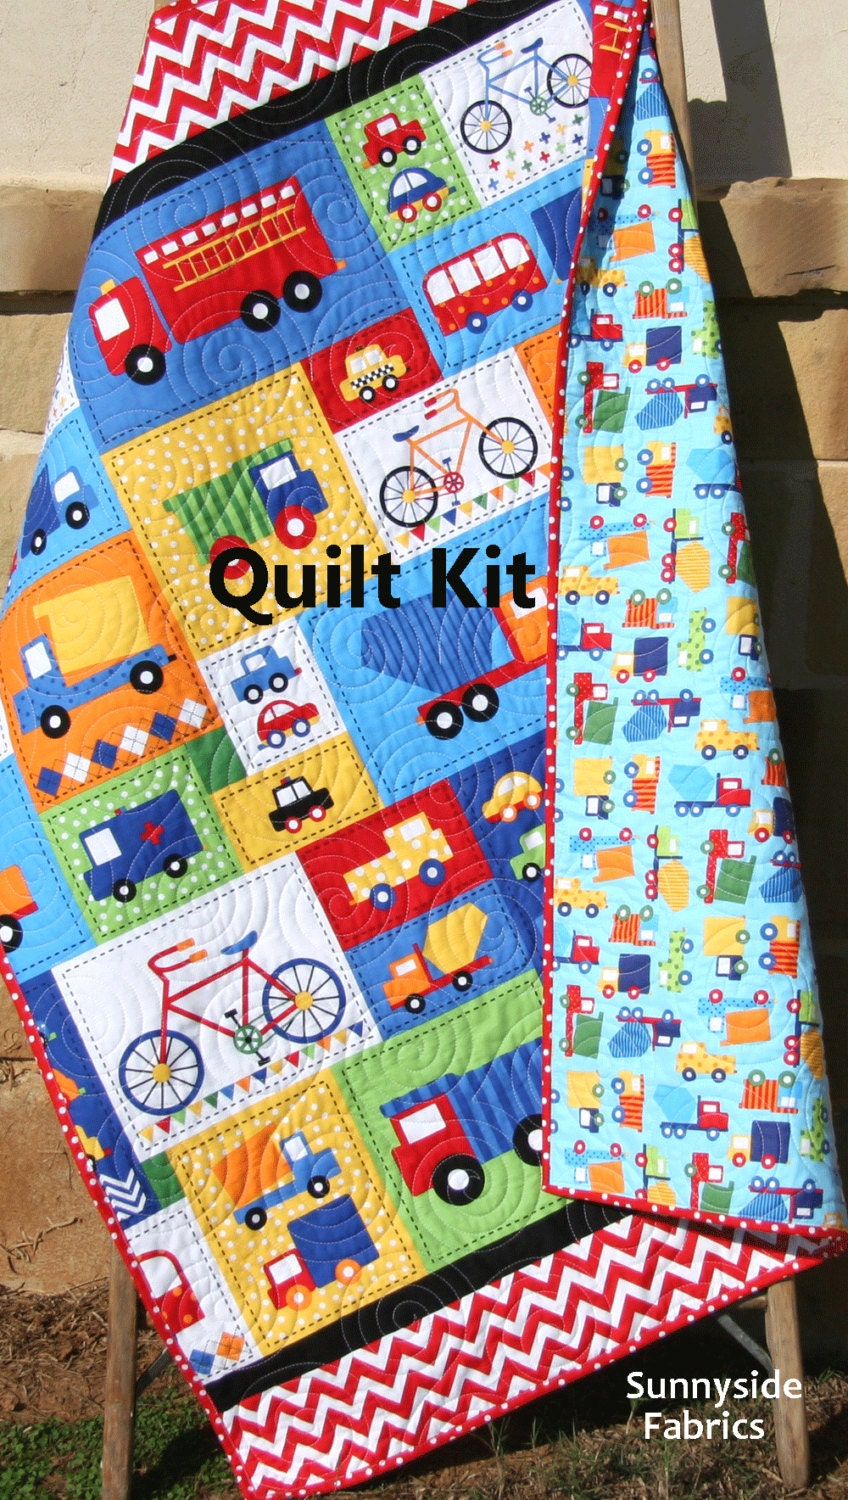 Toddler quilt kit primary ann kelle robert kaufman fabrics for Boy quilt fabric